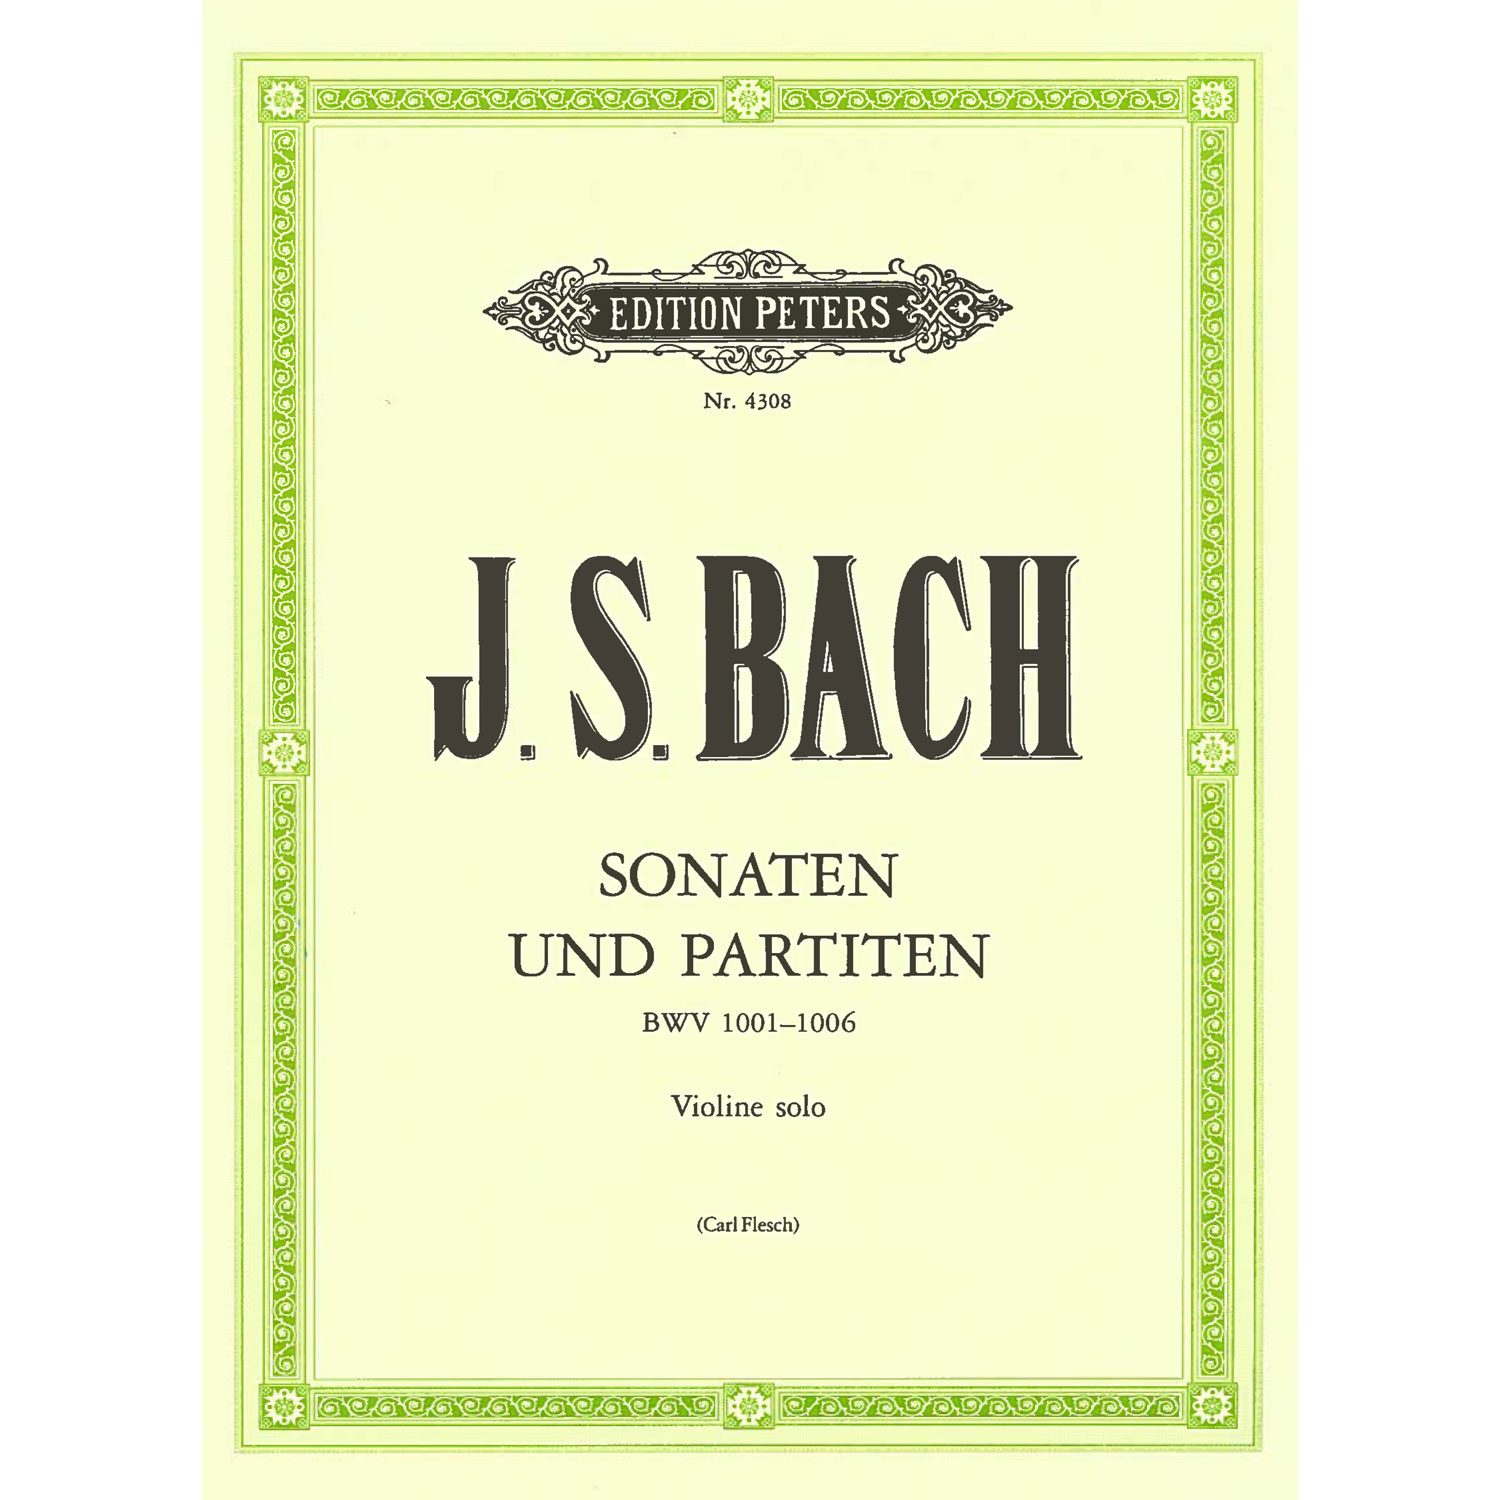 Sonatas and Partitas for Violin BWV 1001-1006 by J. S. Bach